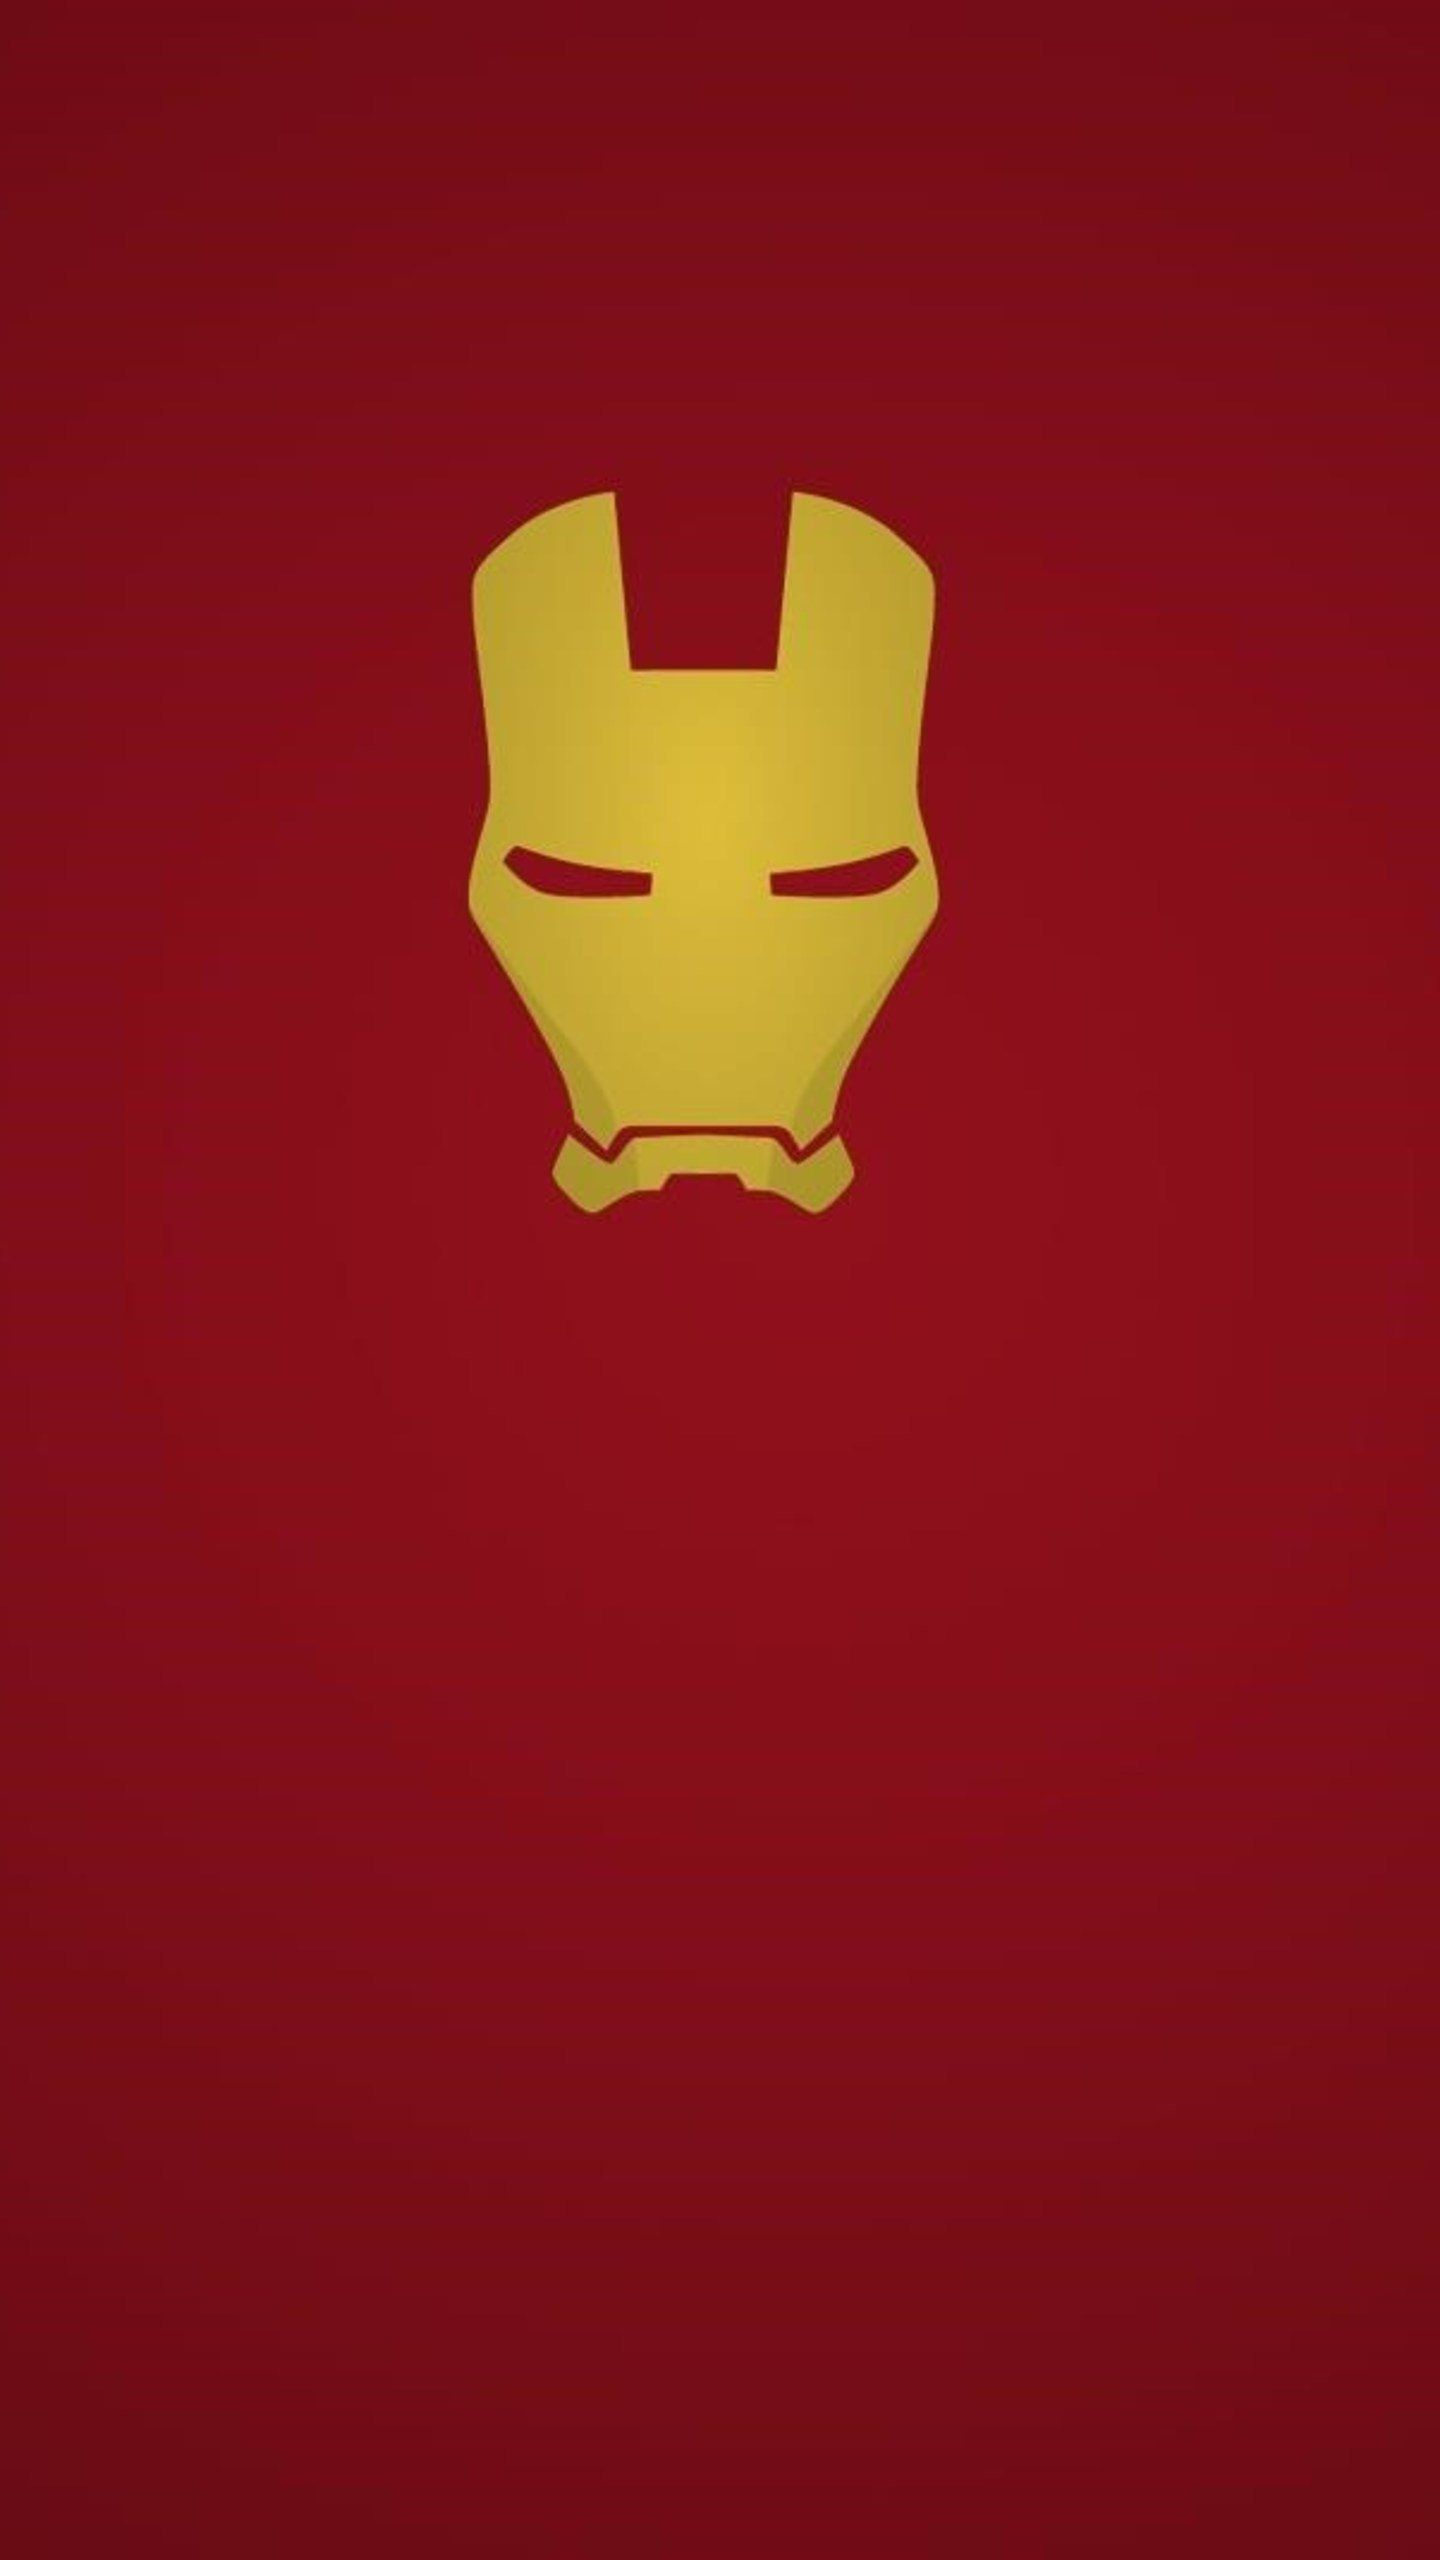 Download Best Hero Logo Wallpaper for iPhone 11 Pro Max This Month uploade by hdpictures.me